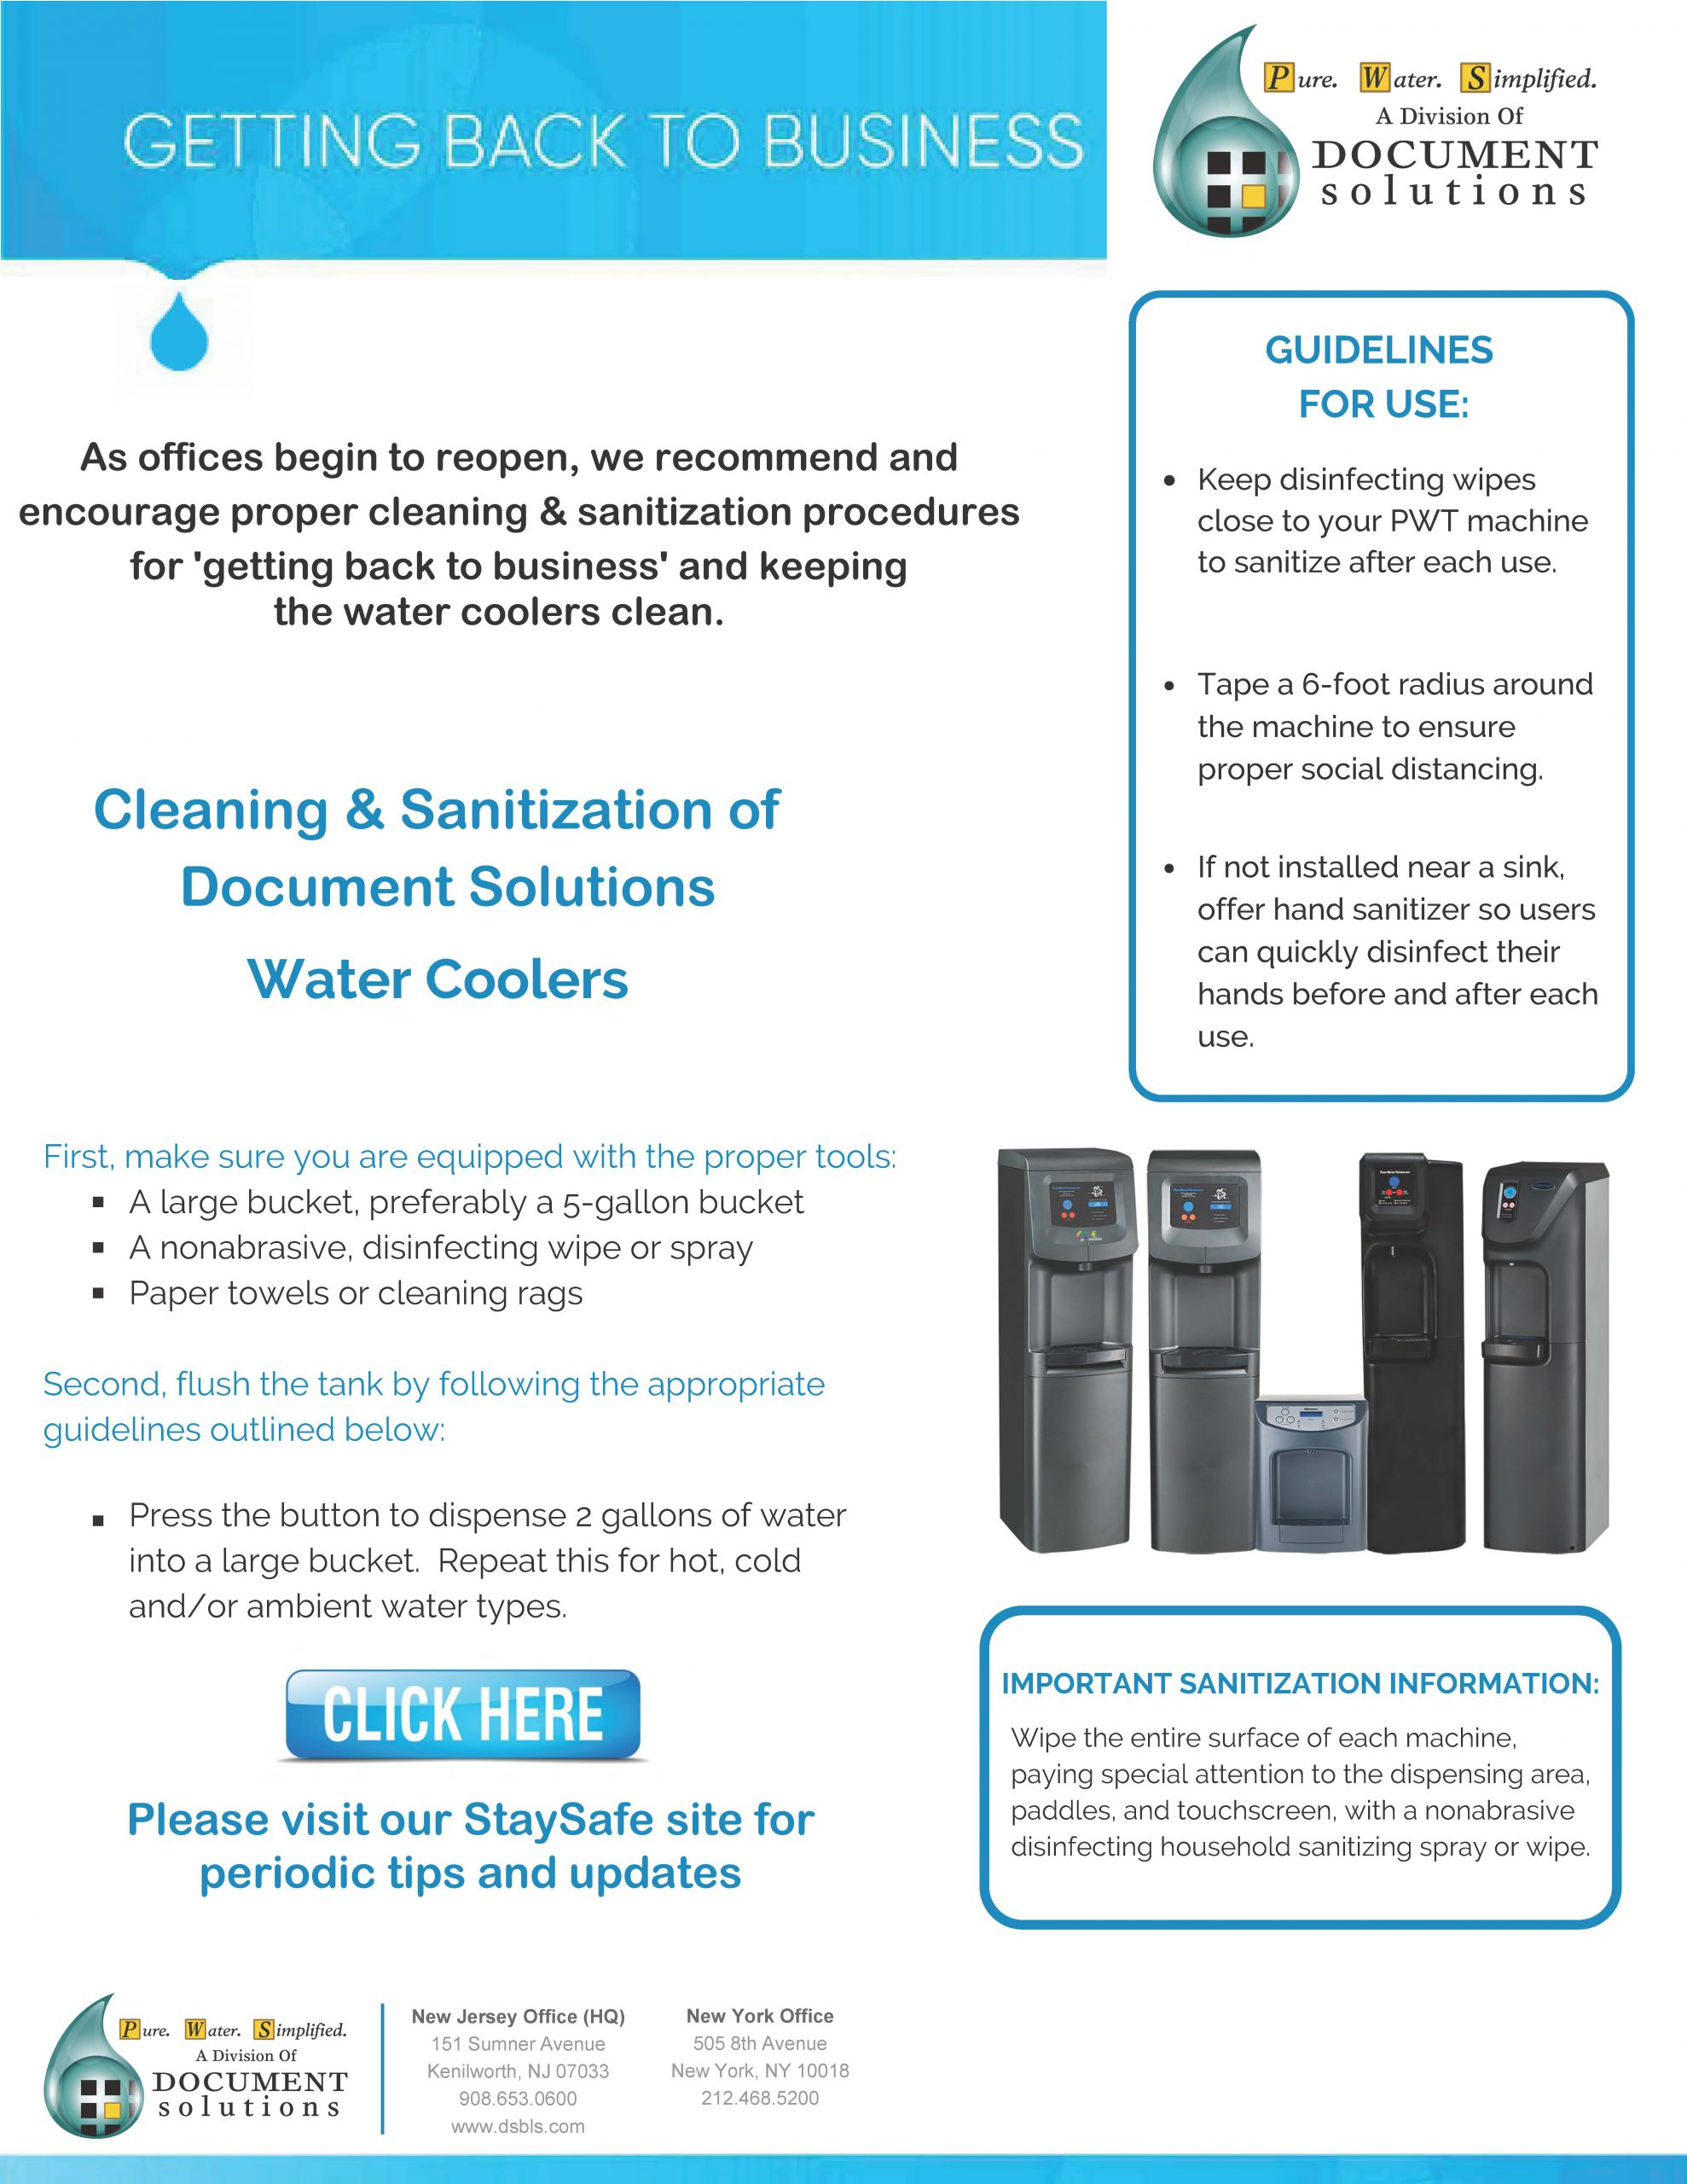 guide to getting back to business with office water cooler cleaning